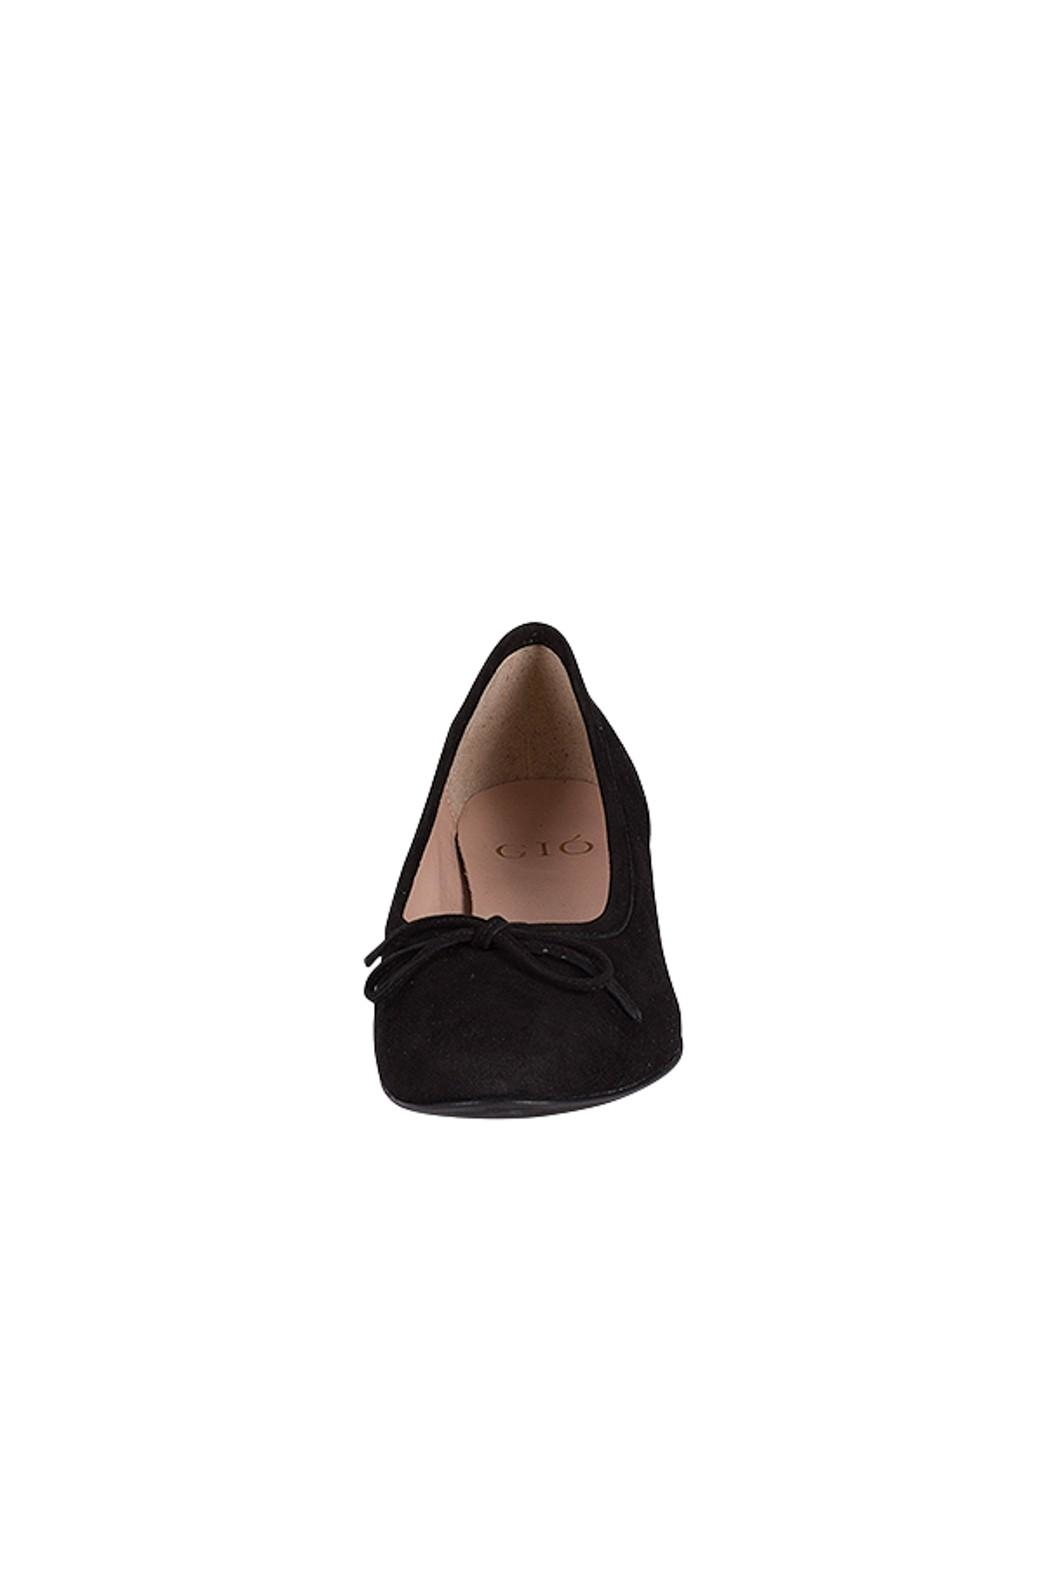 Pascucci Black Leather-Suede Ballerinas - Side Cropped Image